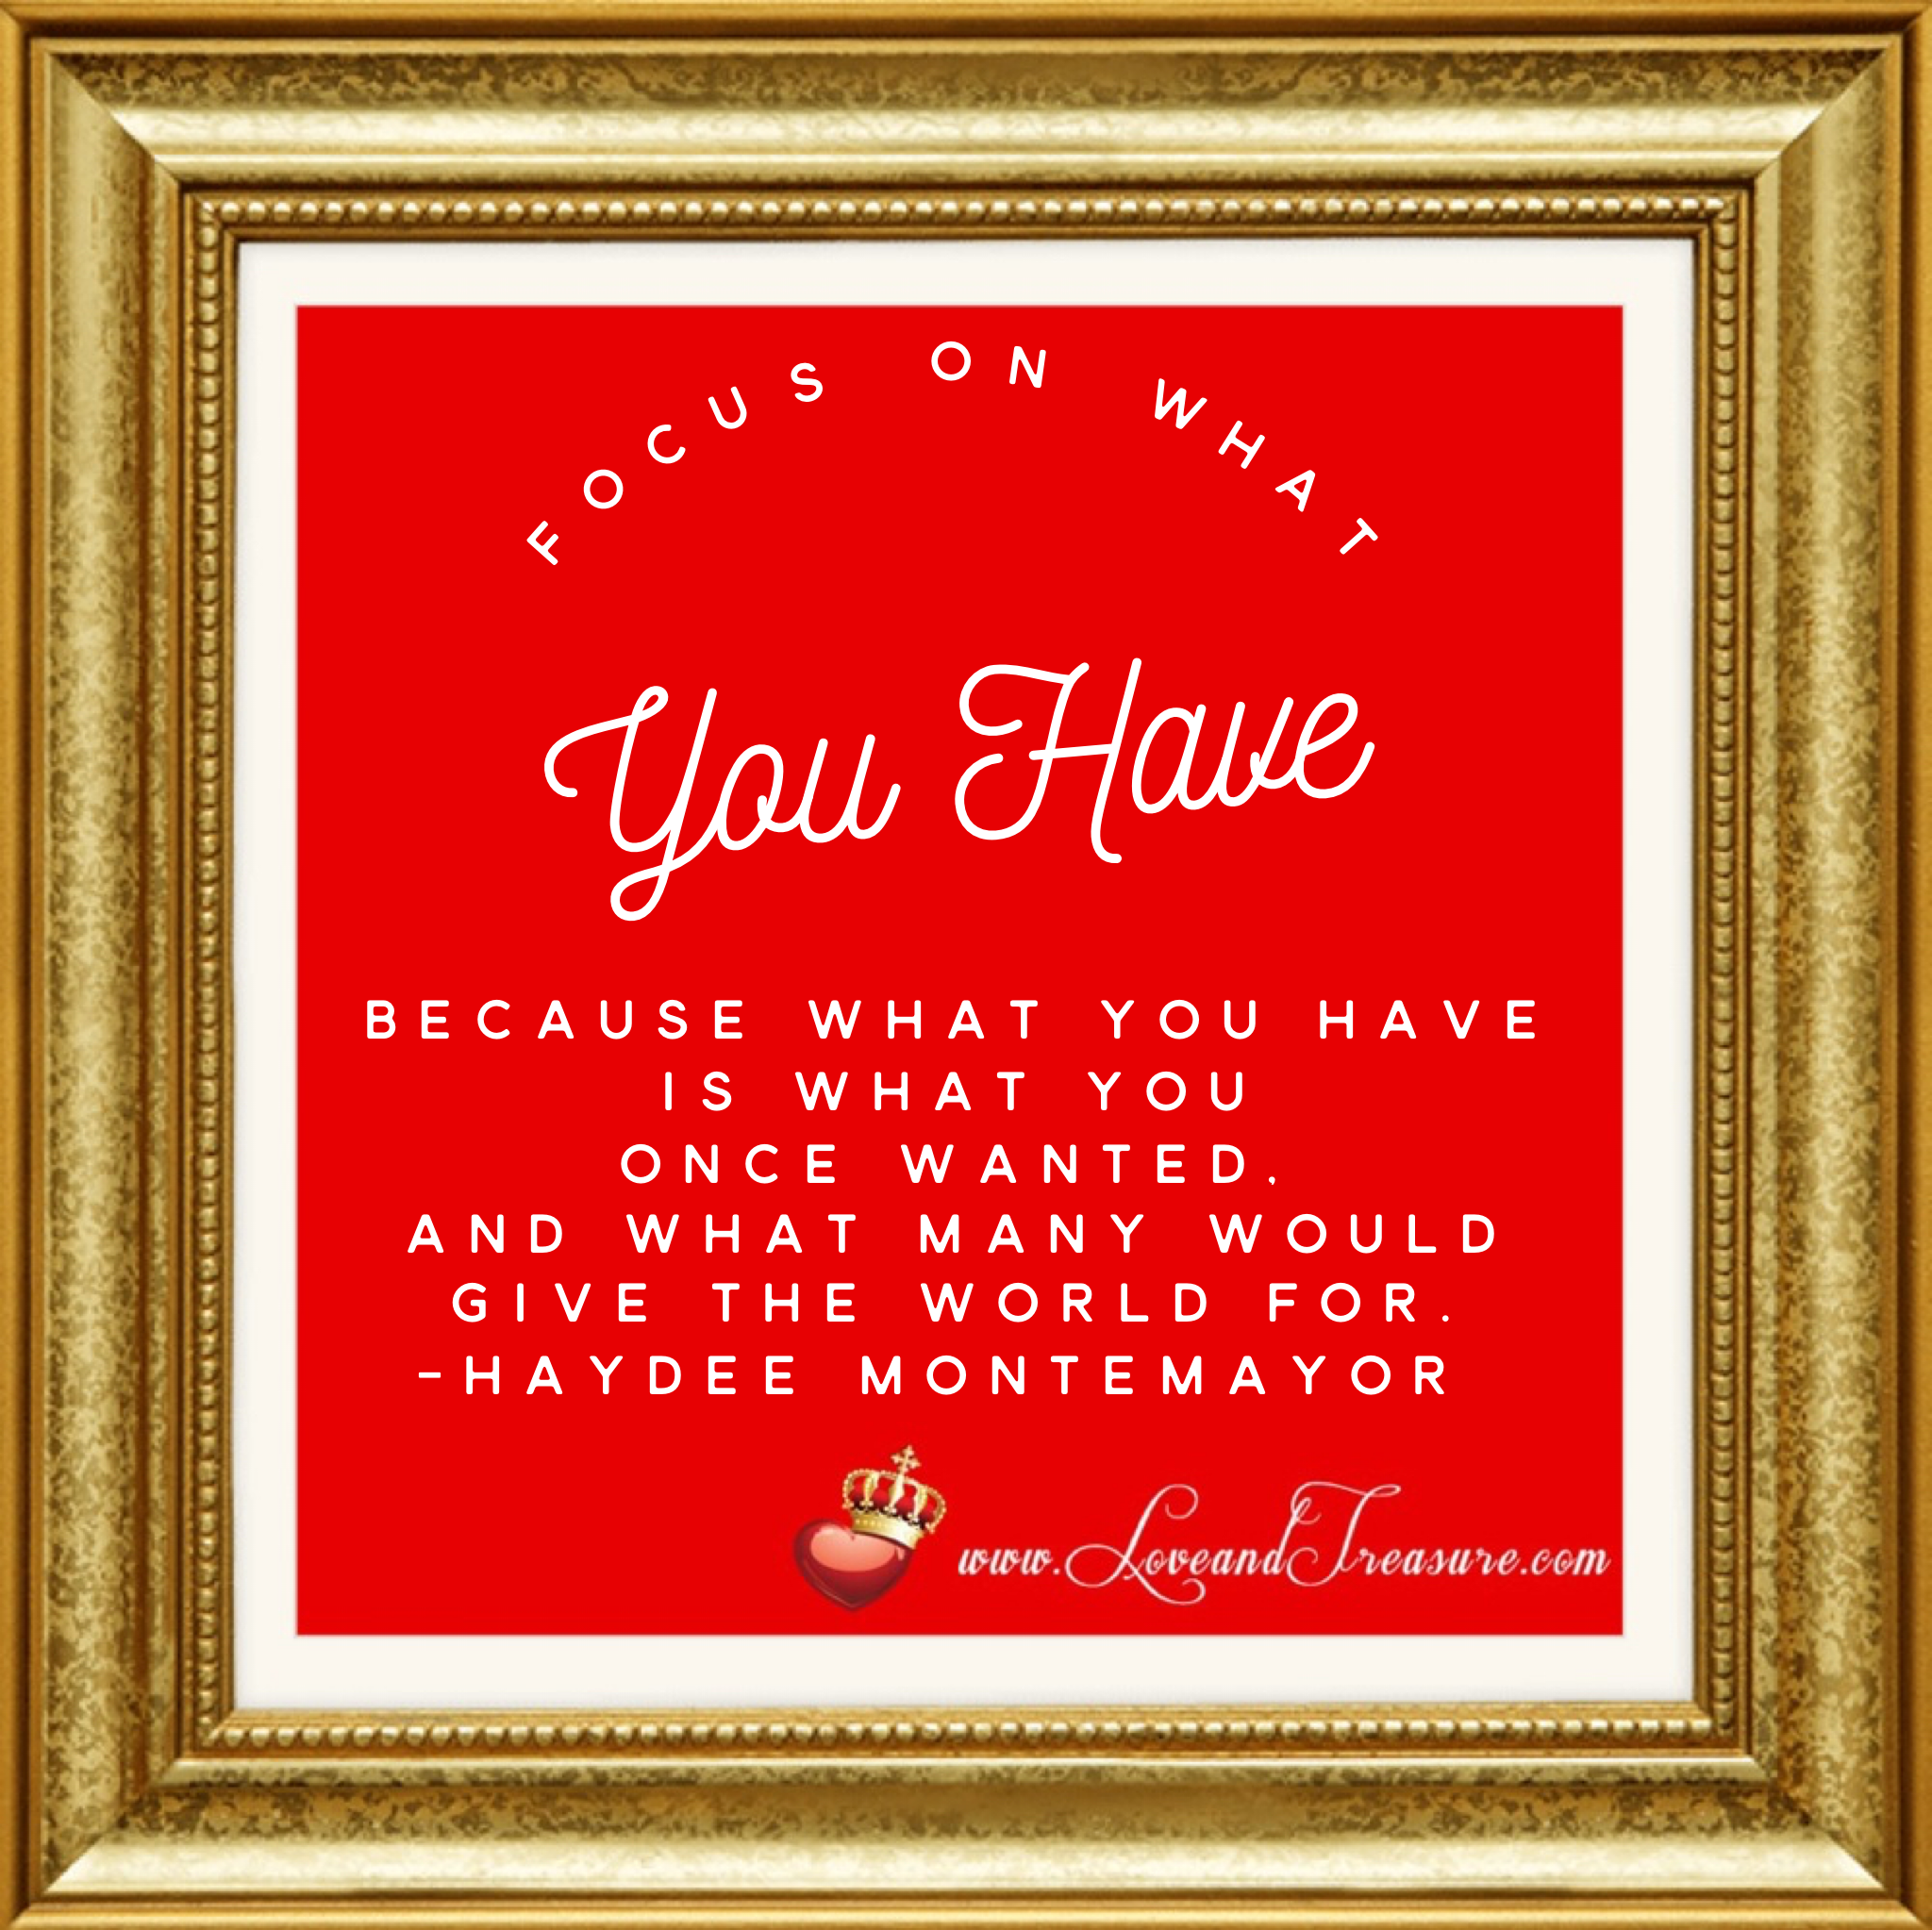 Focus on what you have because what you have is what you once wanted and what many would give the world for. Quotation by Haydee Montemayor from Love and Treasure blog at www.loveandtreasure.com